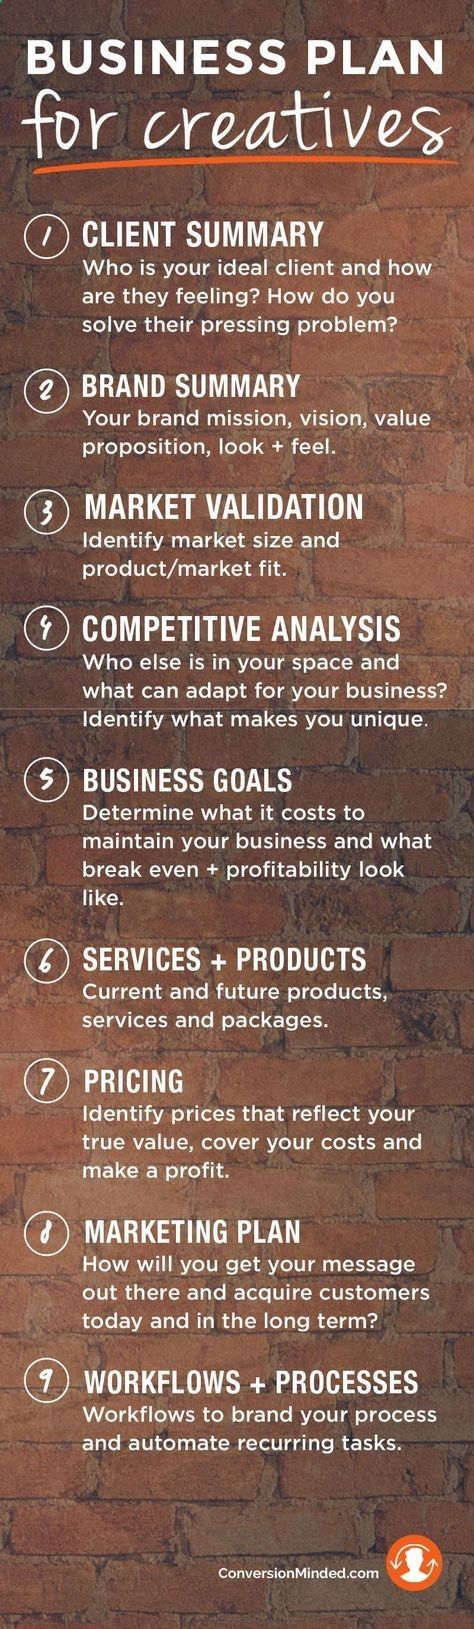 FREE Business Plan Template If you